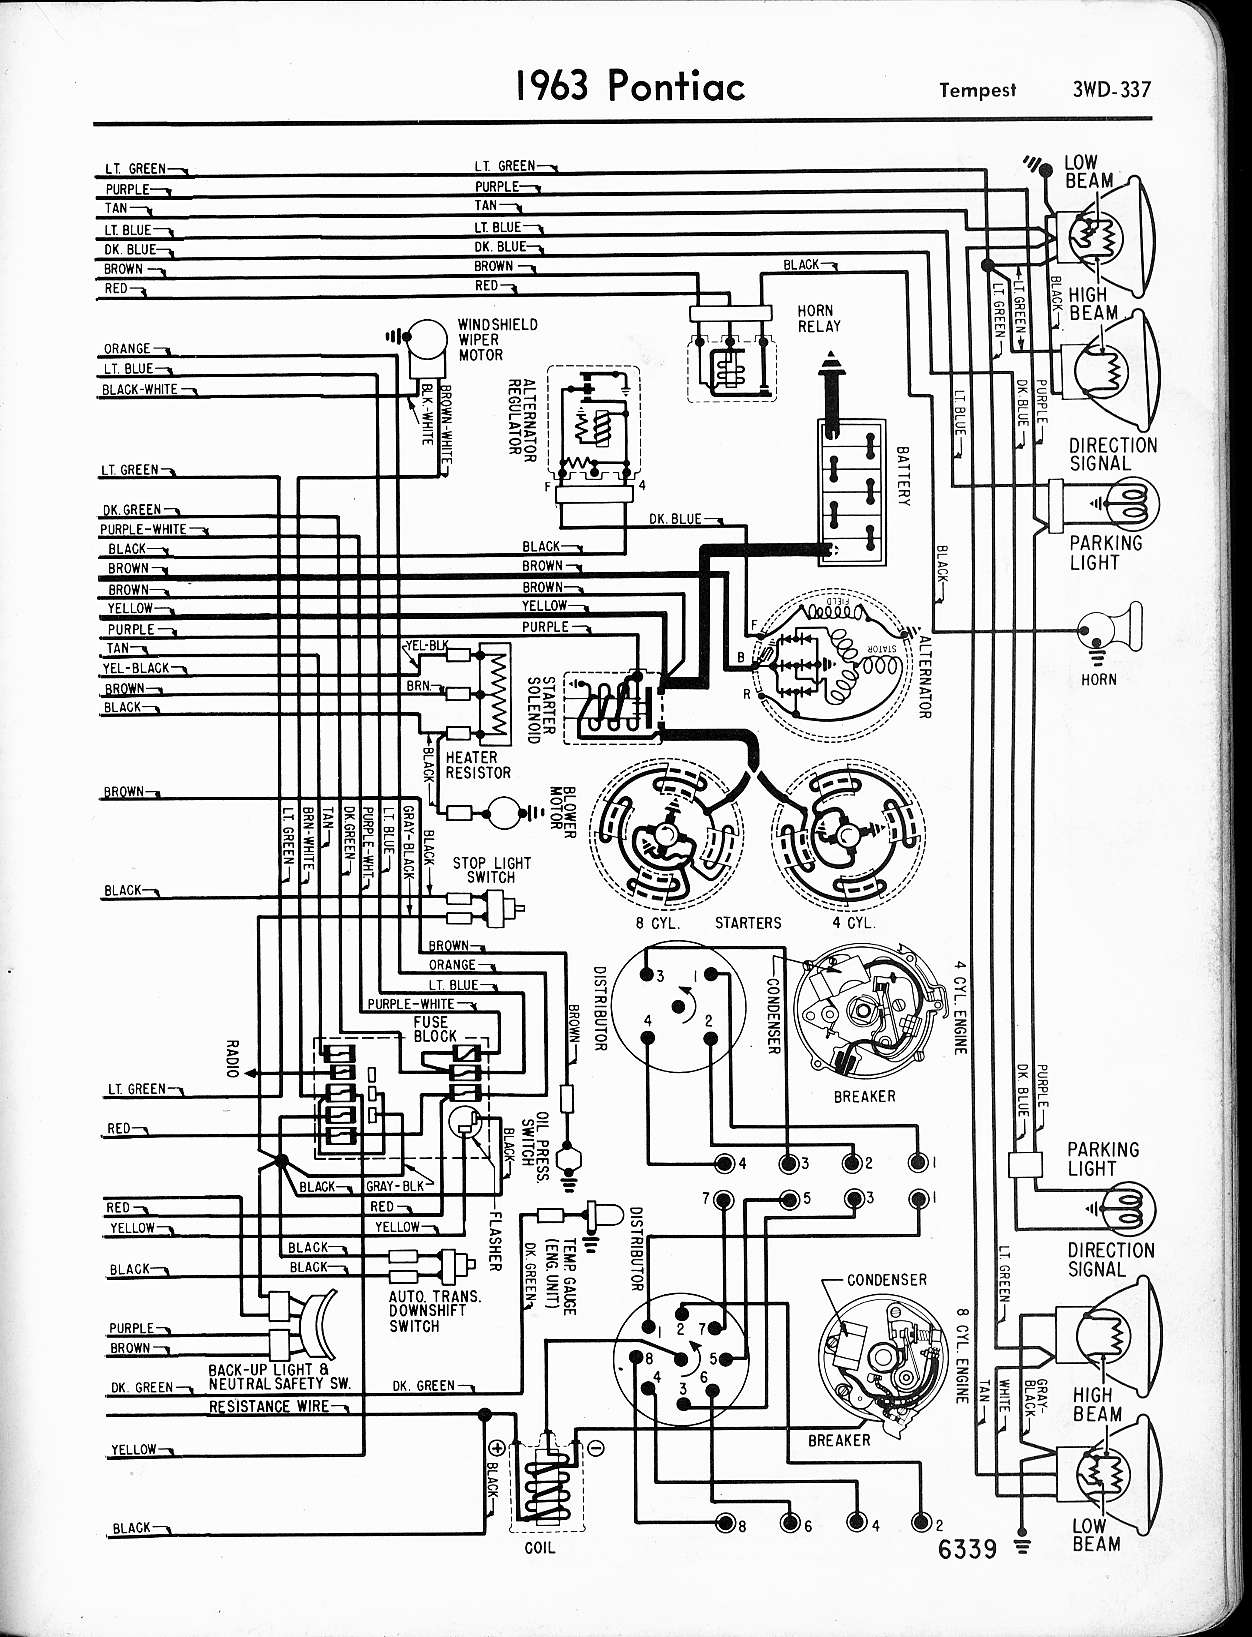 Wallace Racing Wiring Diagrams 72 Nova Wiring Diagram 68 Gto Wiring Diagram